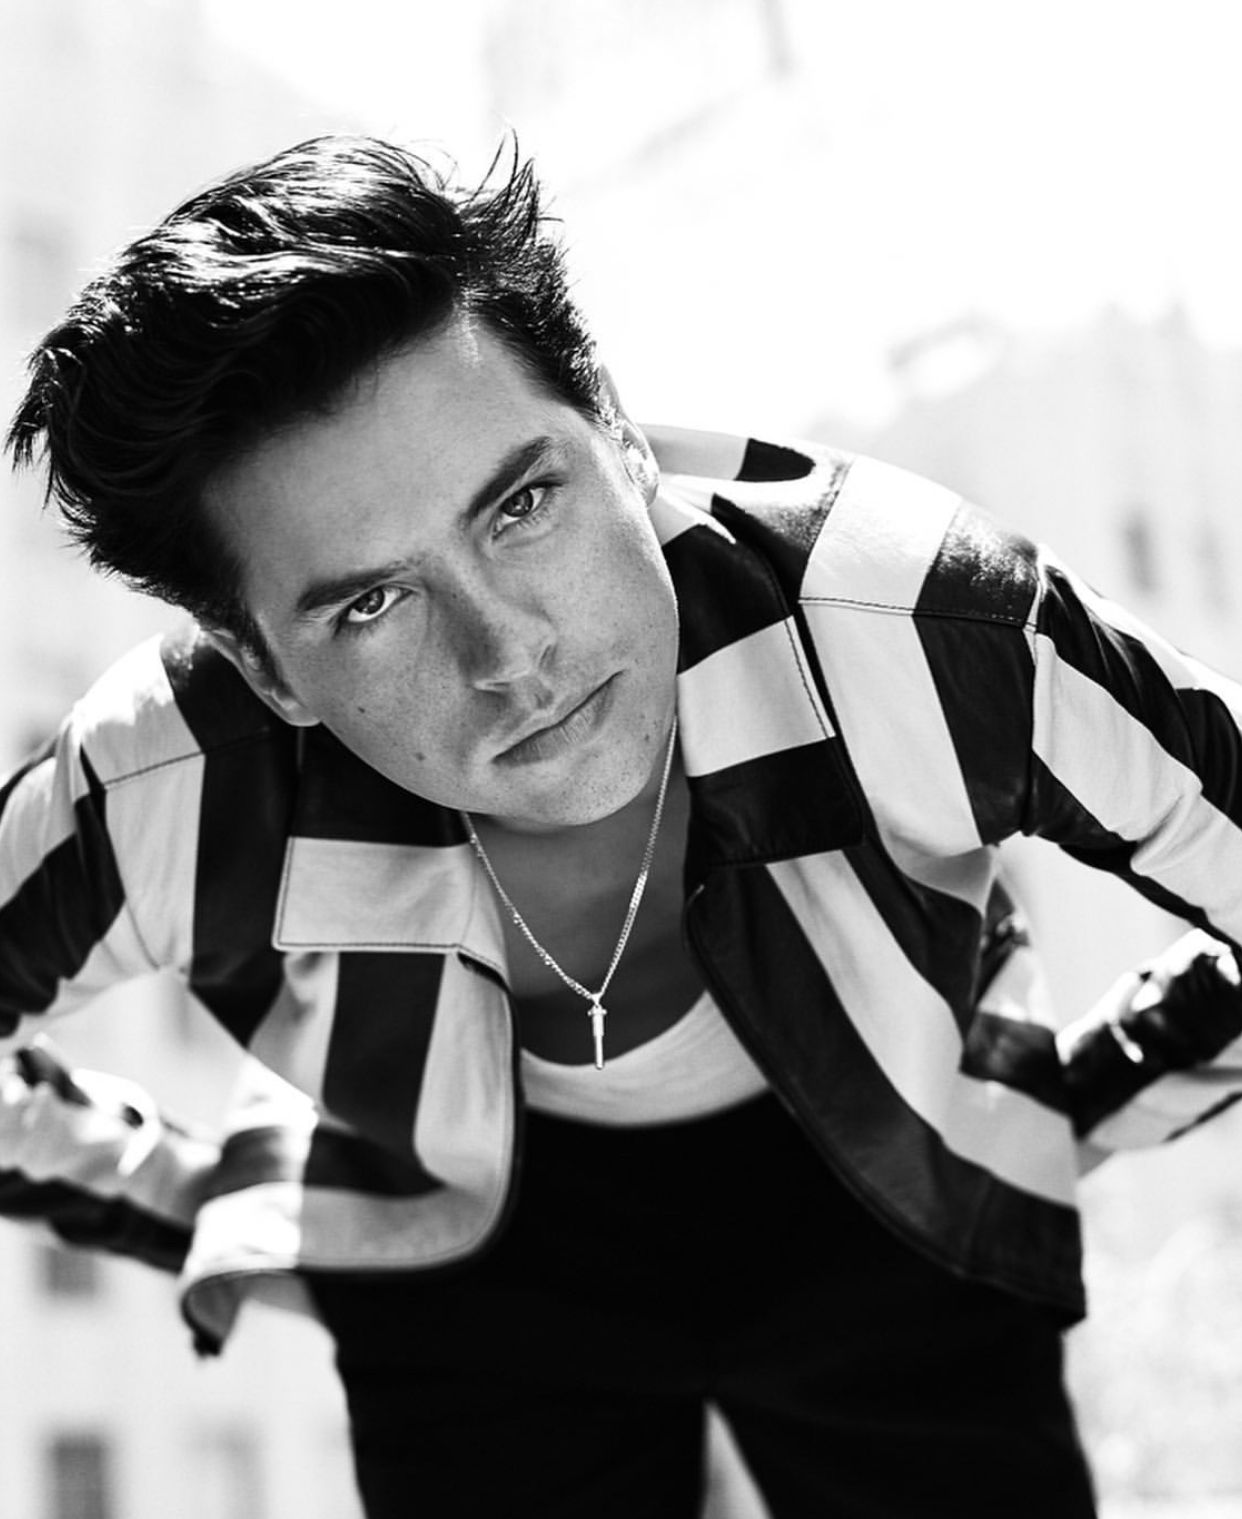 'Riverdale' Cole Sprouse Said the Show's Concept Was Originally His Worst Nightmare | Femestella